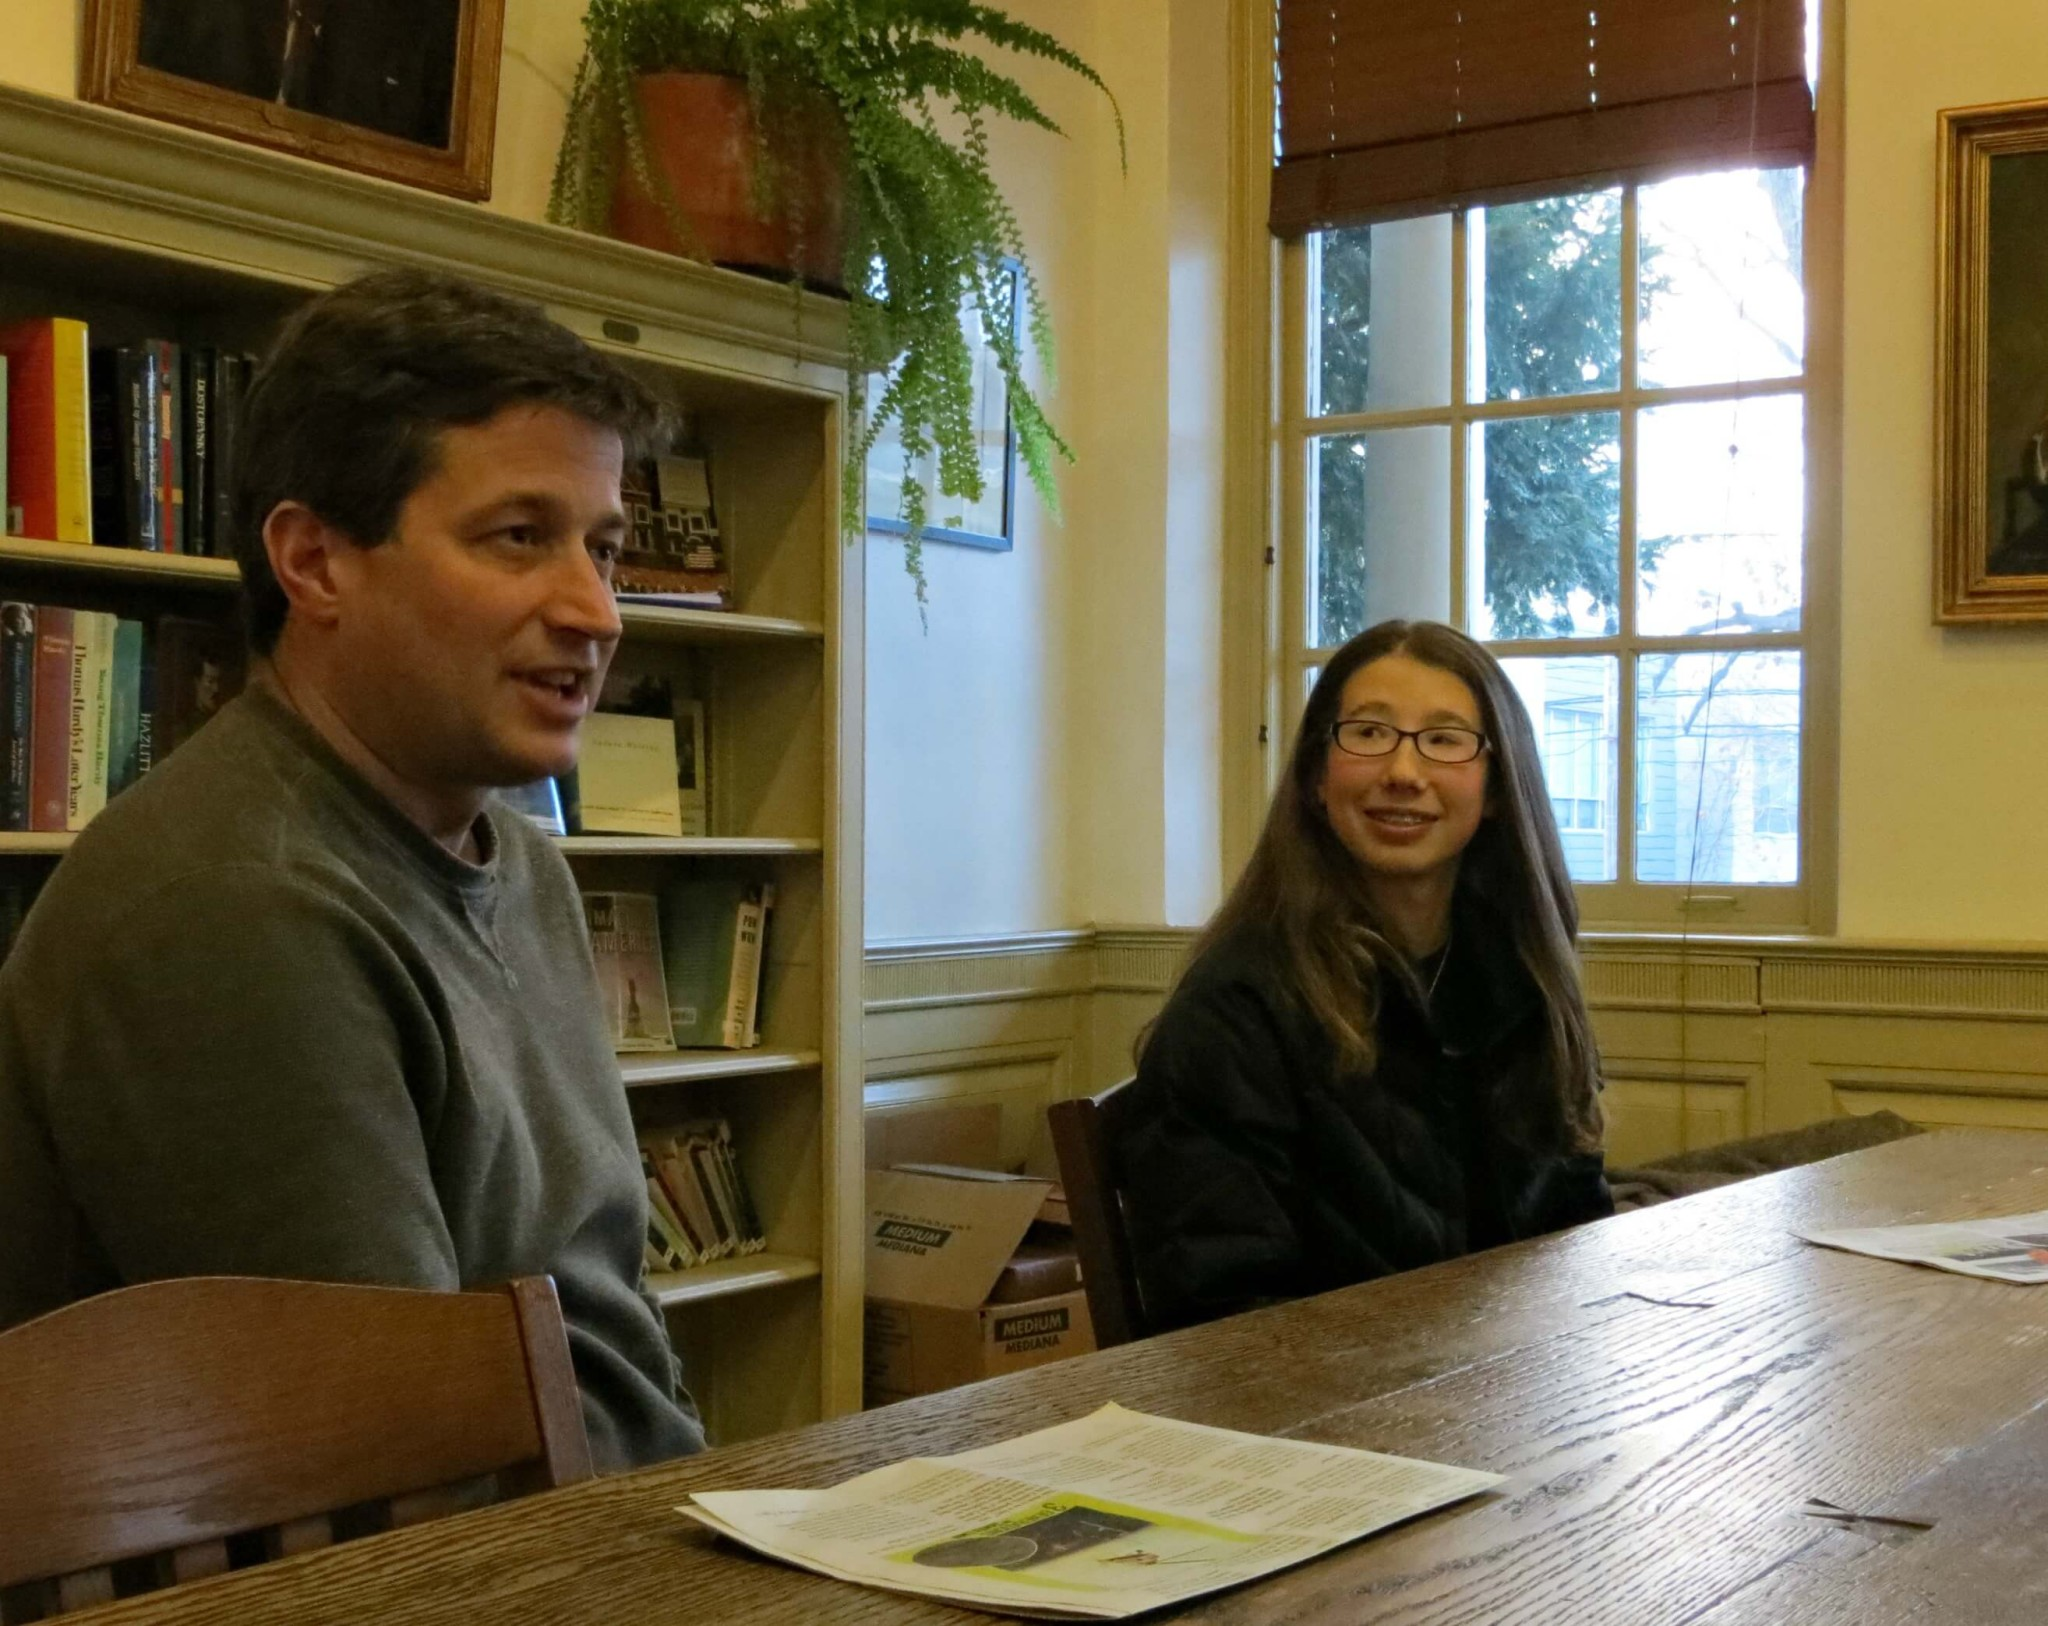 East Falls Local Helen and Ted